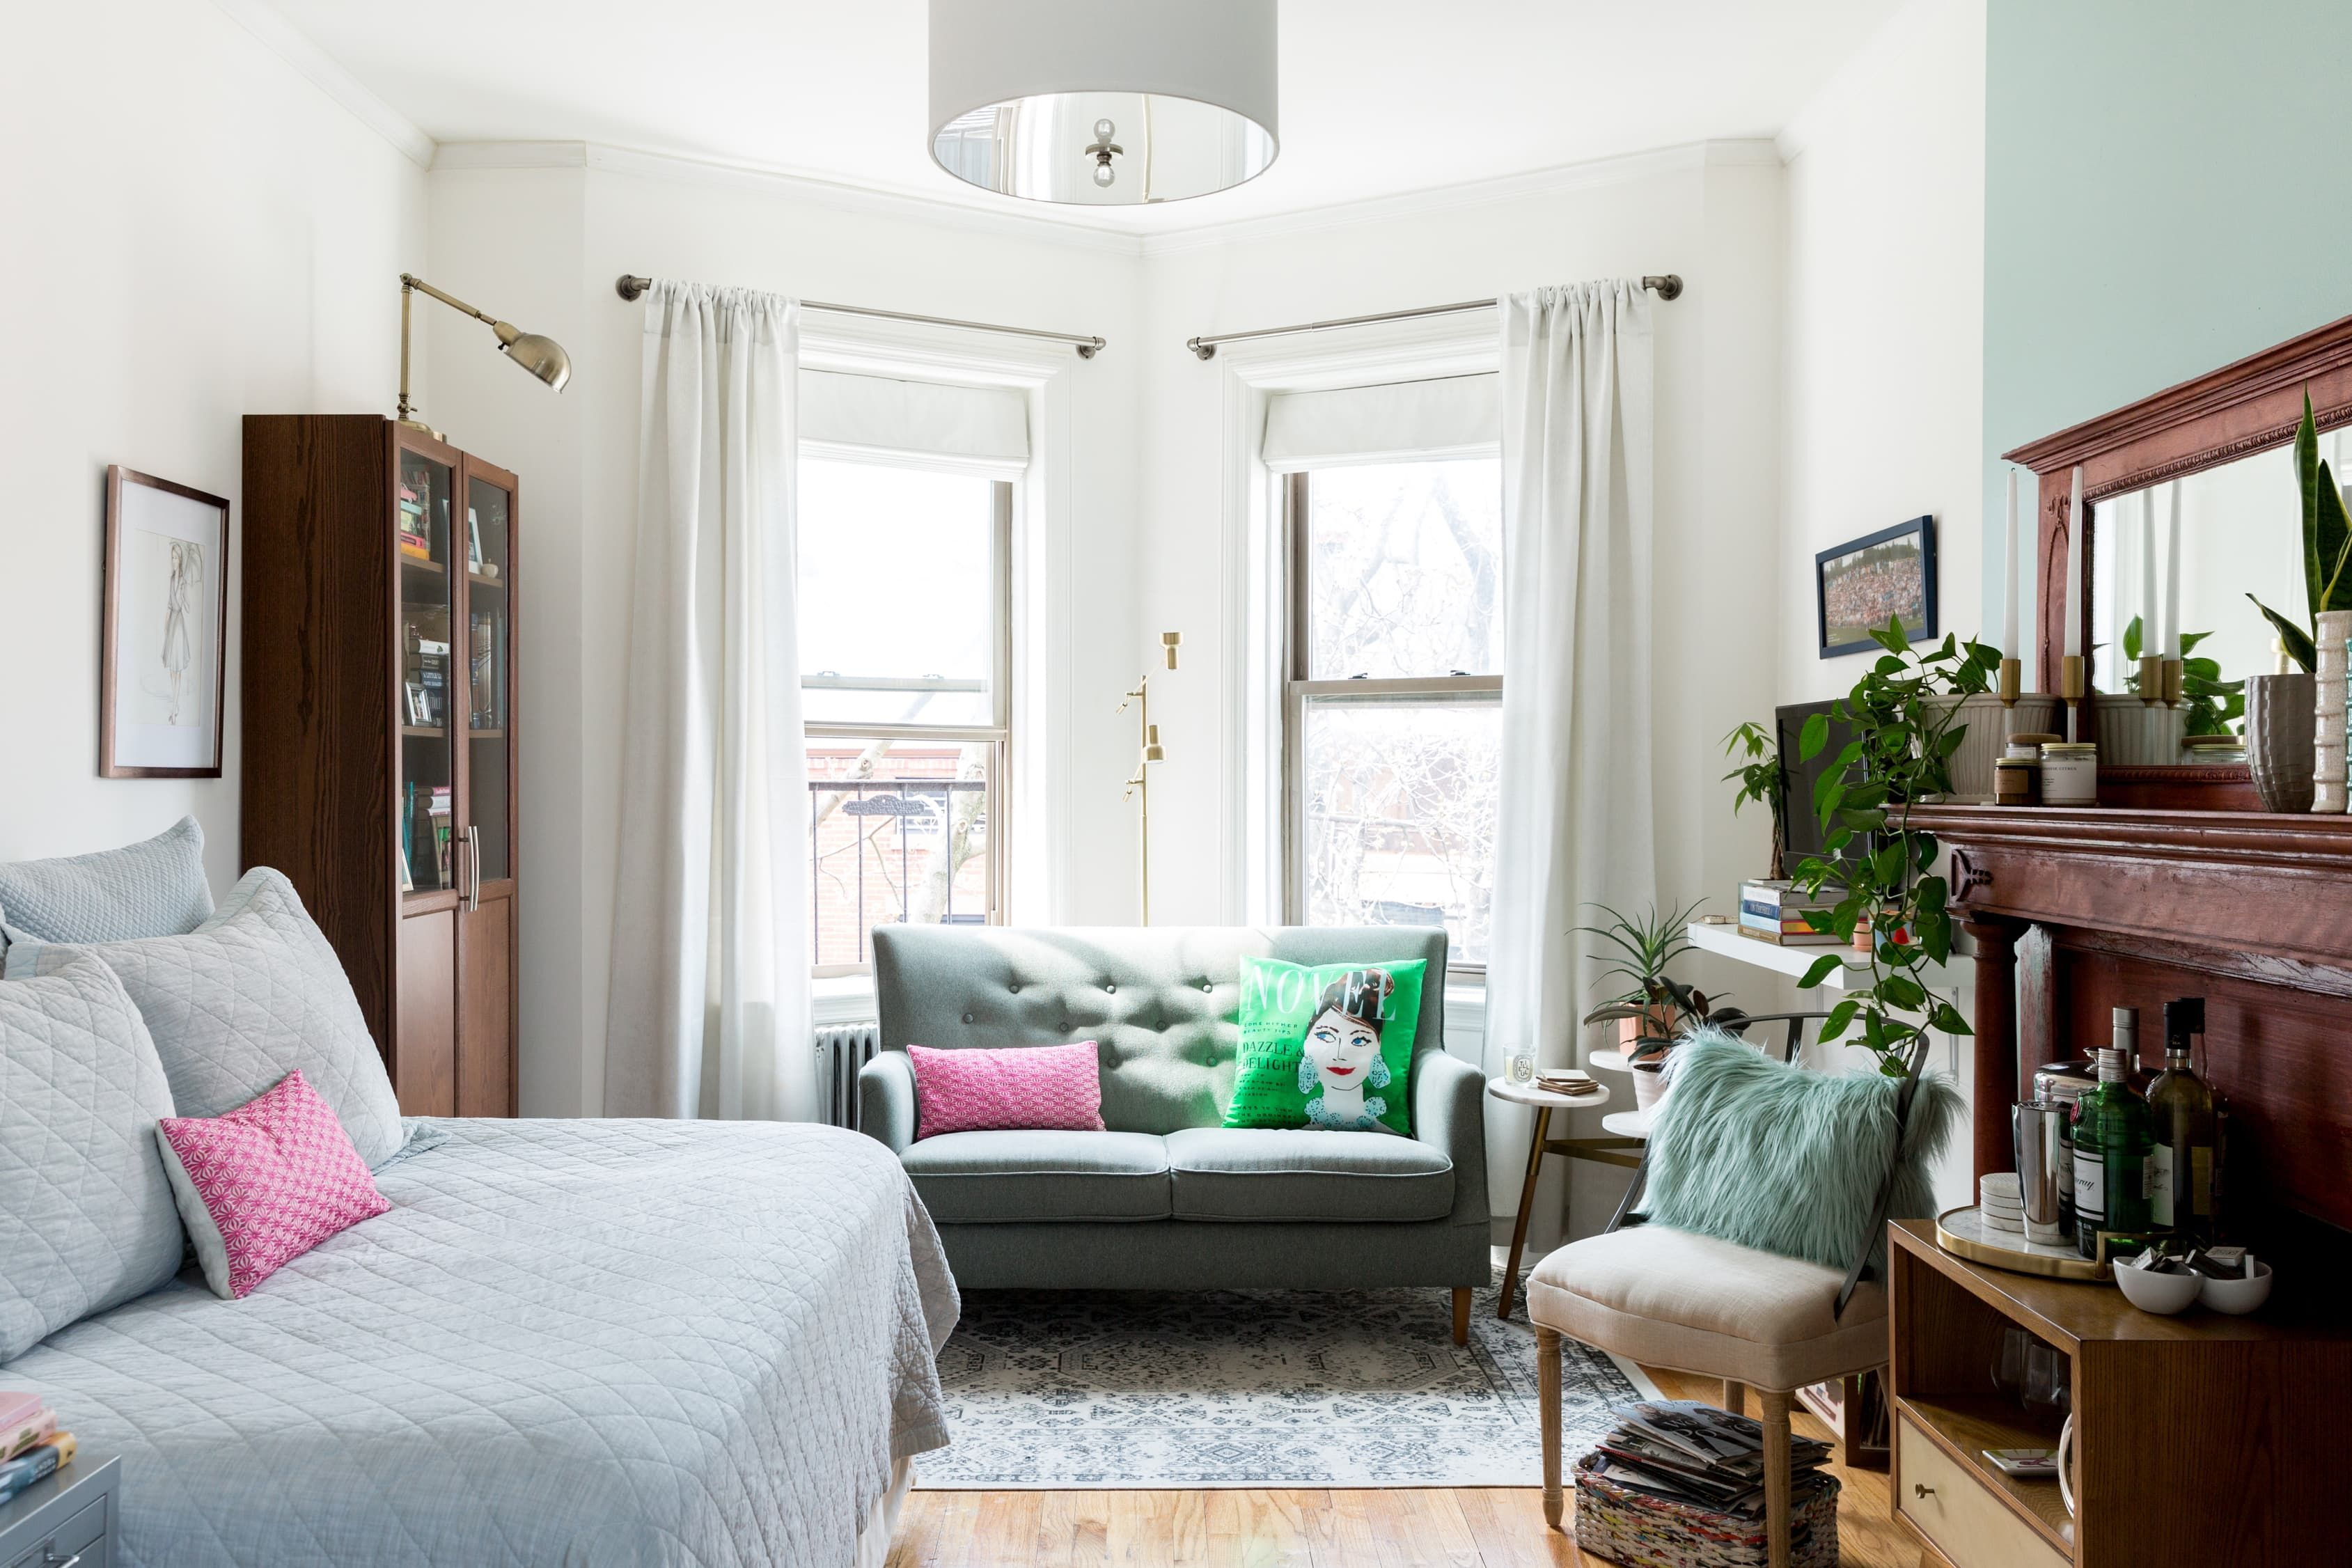 A Super Small 375 Square Foot Studio Is Masterfully Arranged Tiny Living Rooms Living Room Chairs Small Spaces